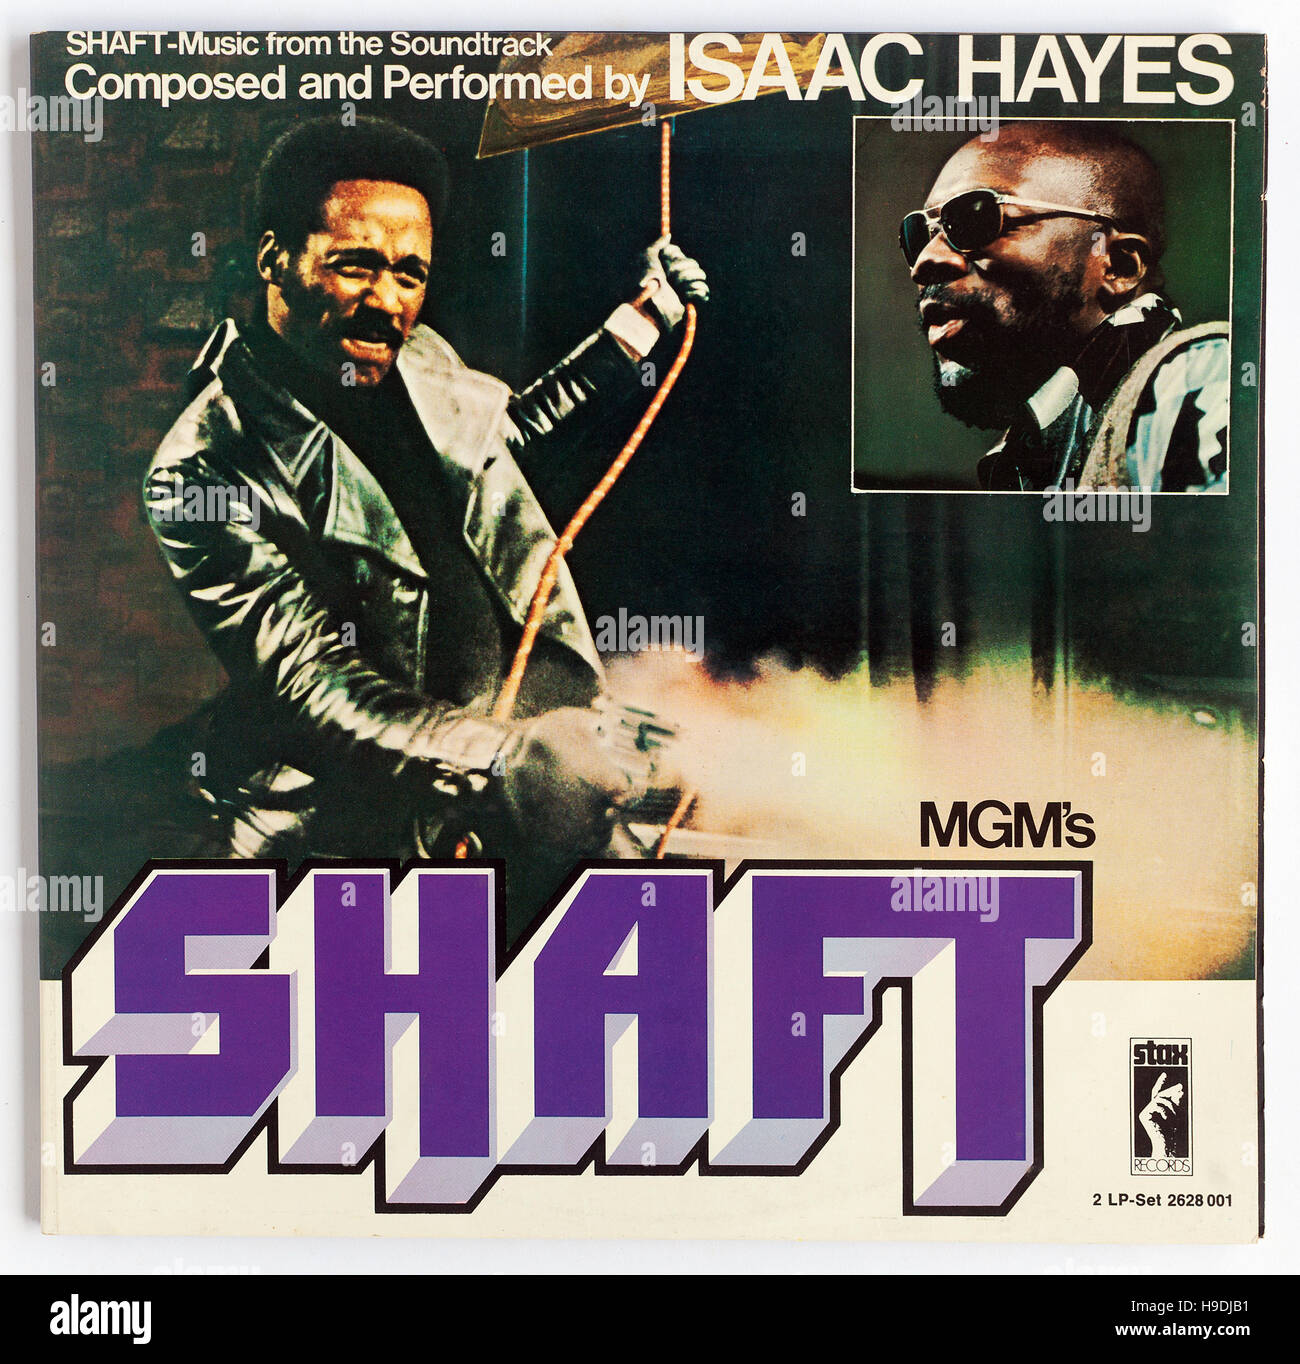 Cover of the soundtrack to 'Shaft' music compsed and performed by Isaac Hayes - Stock Image